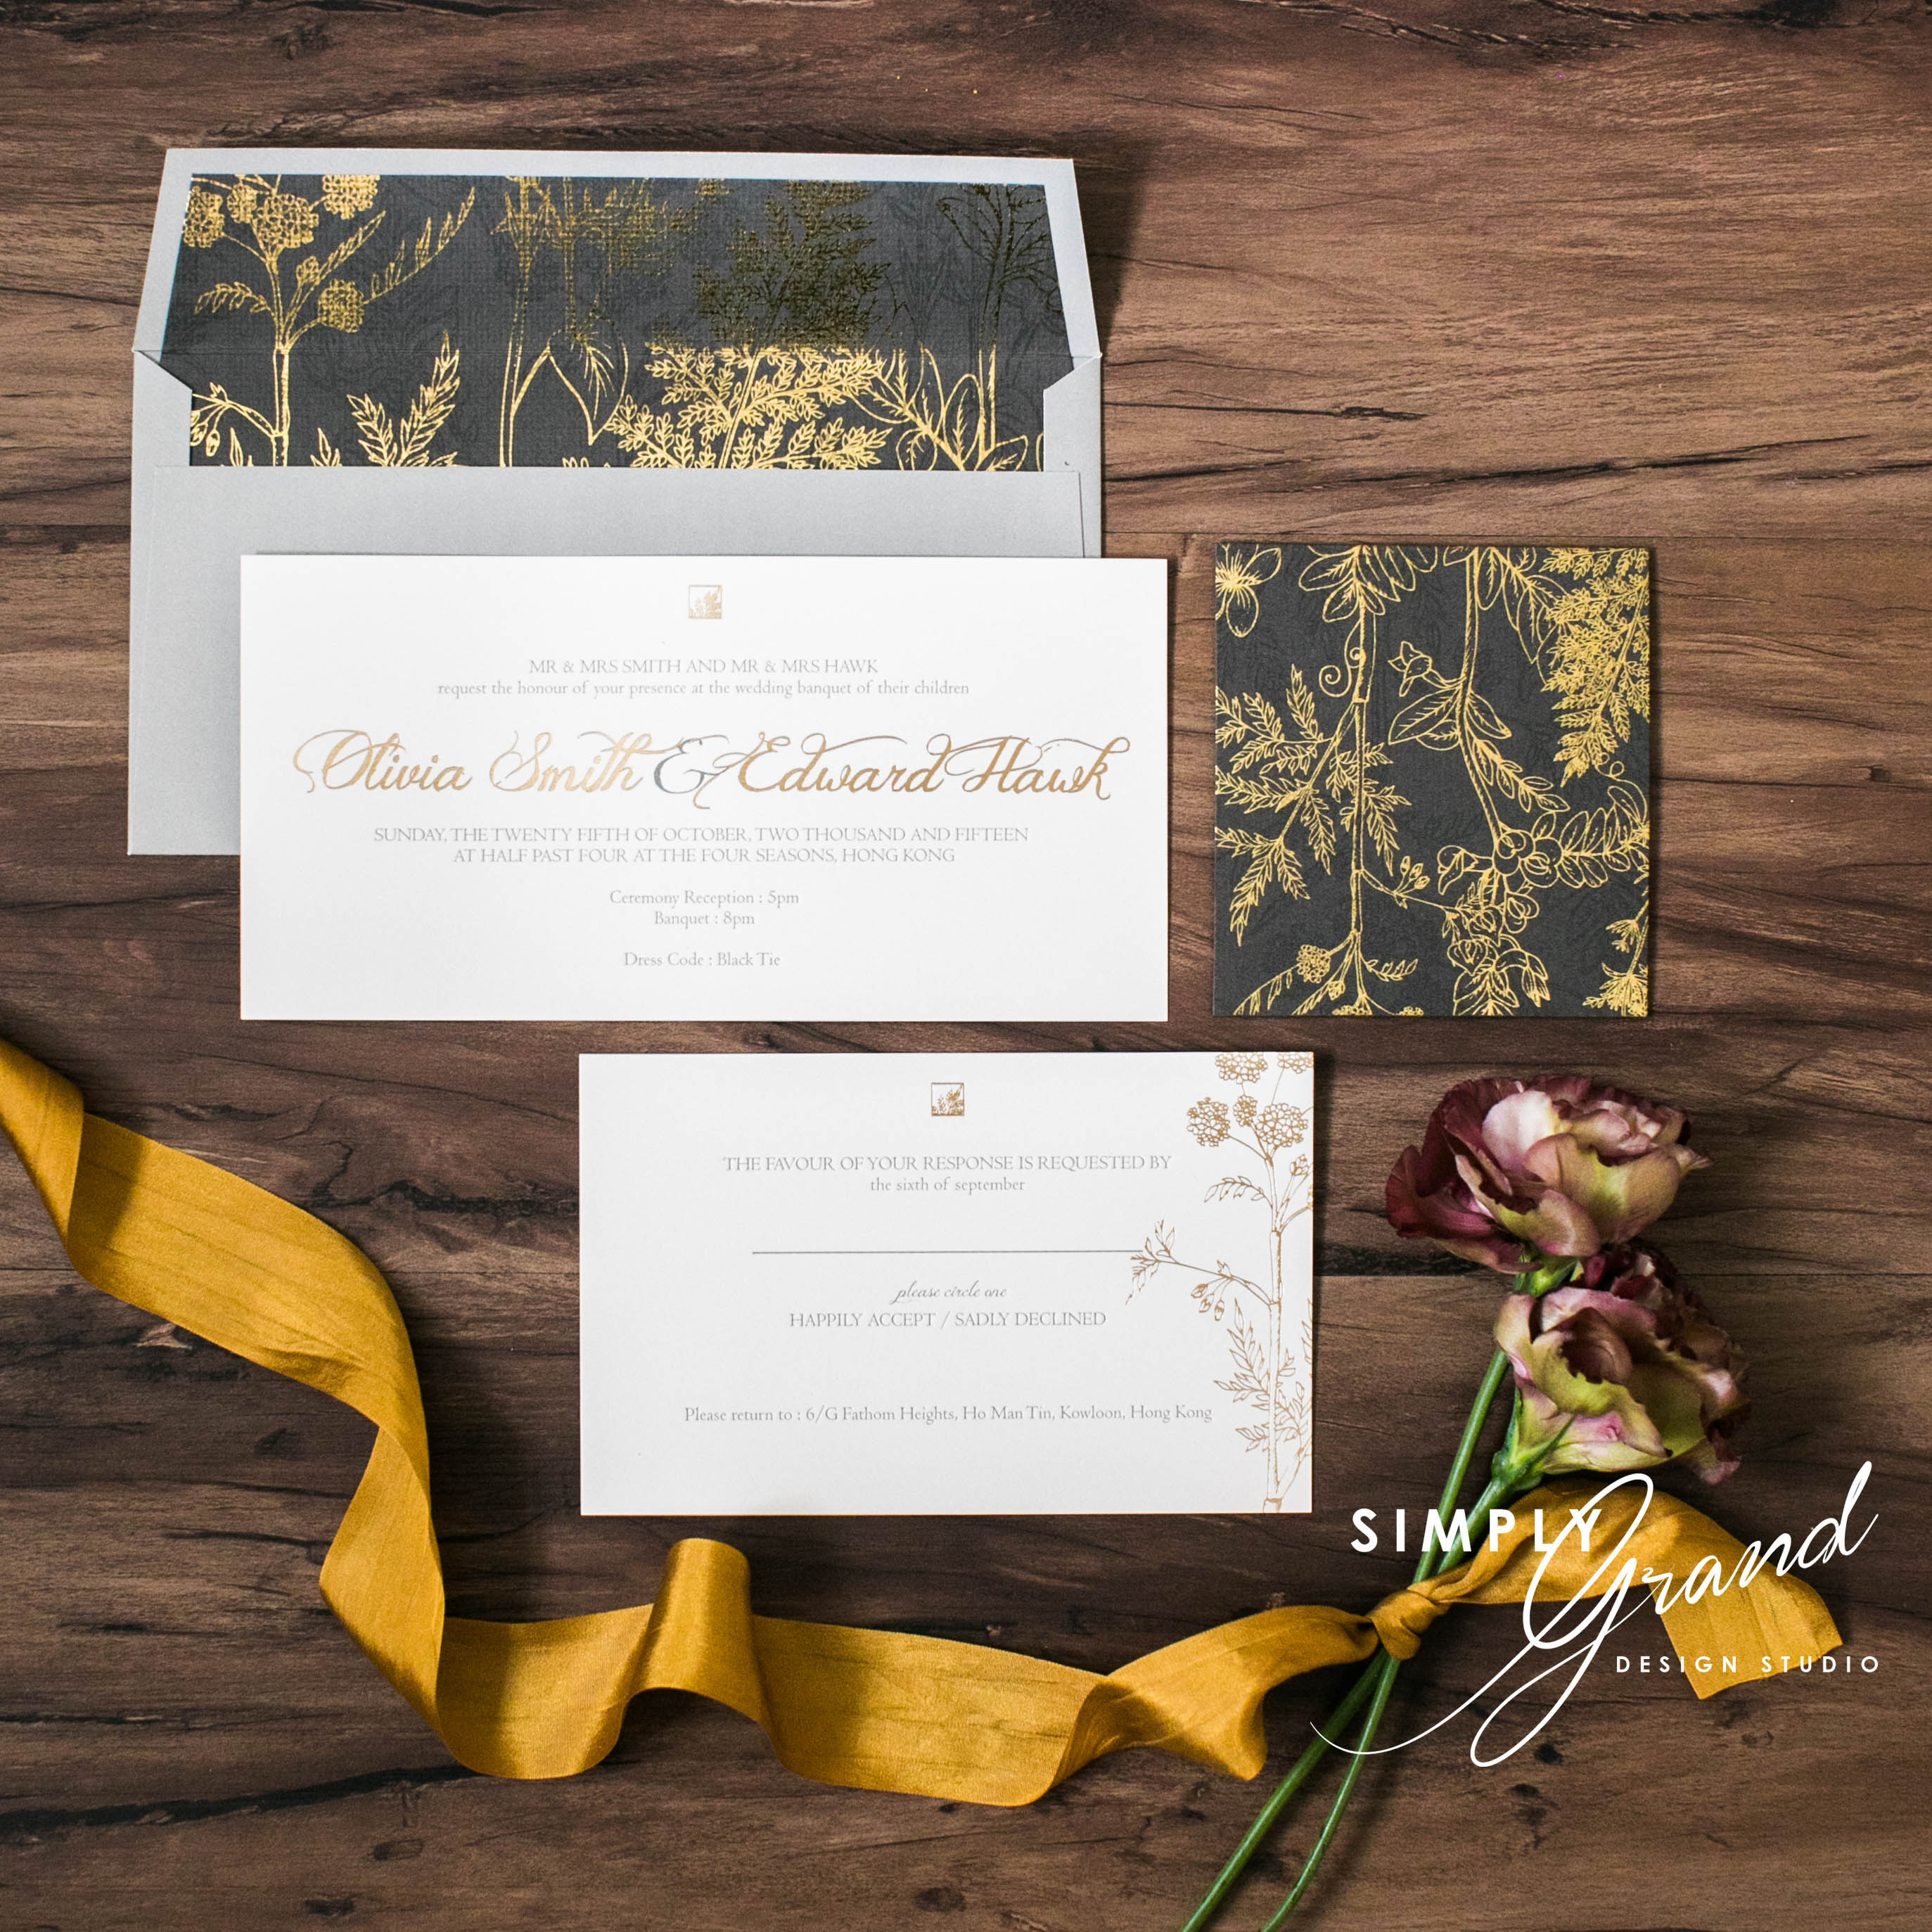 Simply_Grand_Production_Stationery_Invitation_Card_3_2